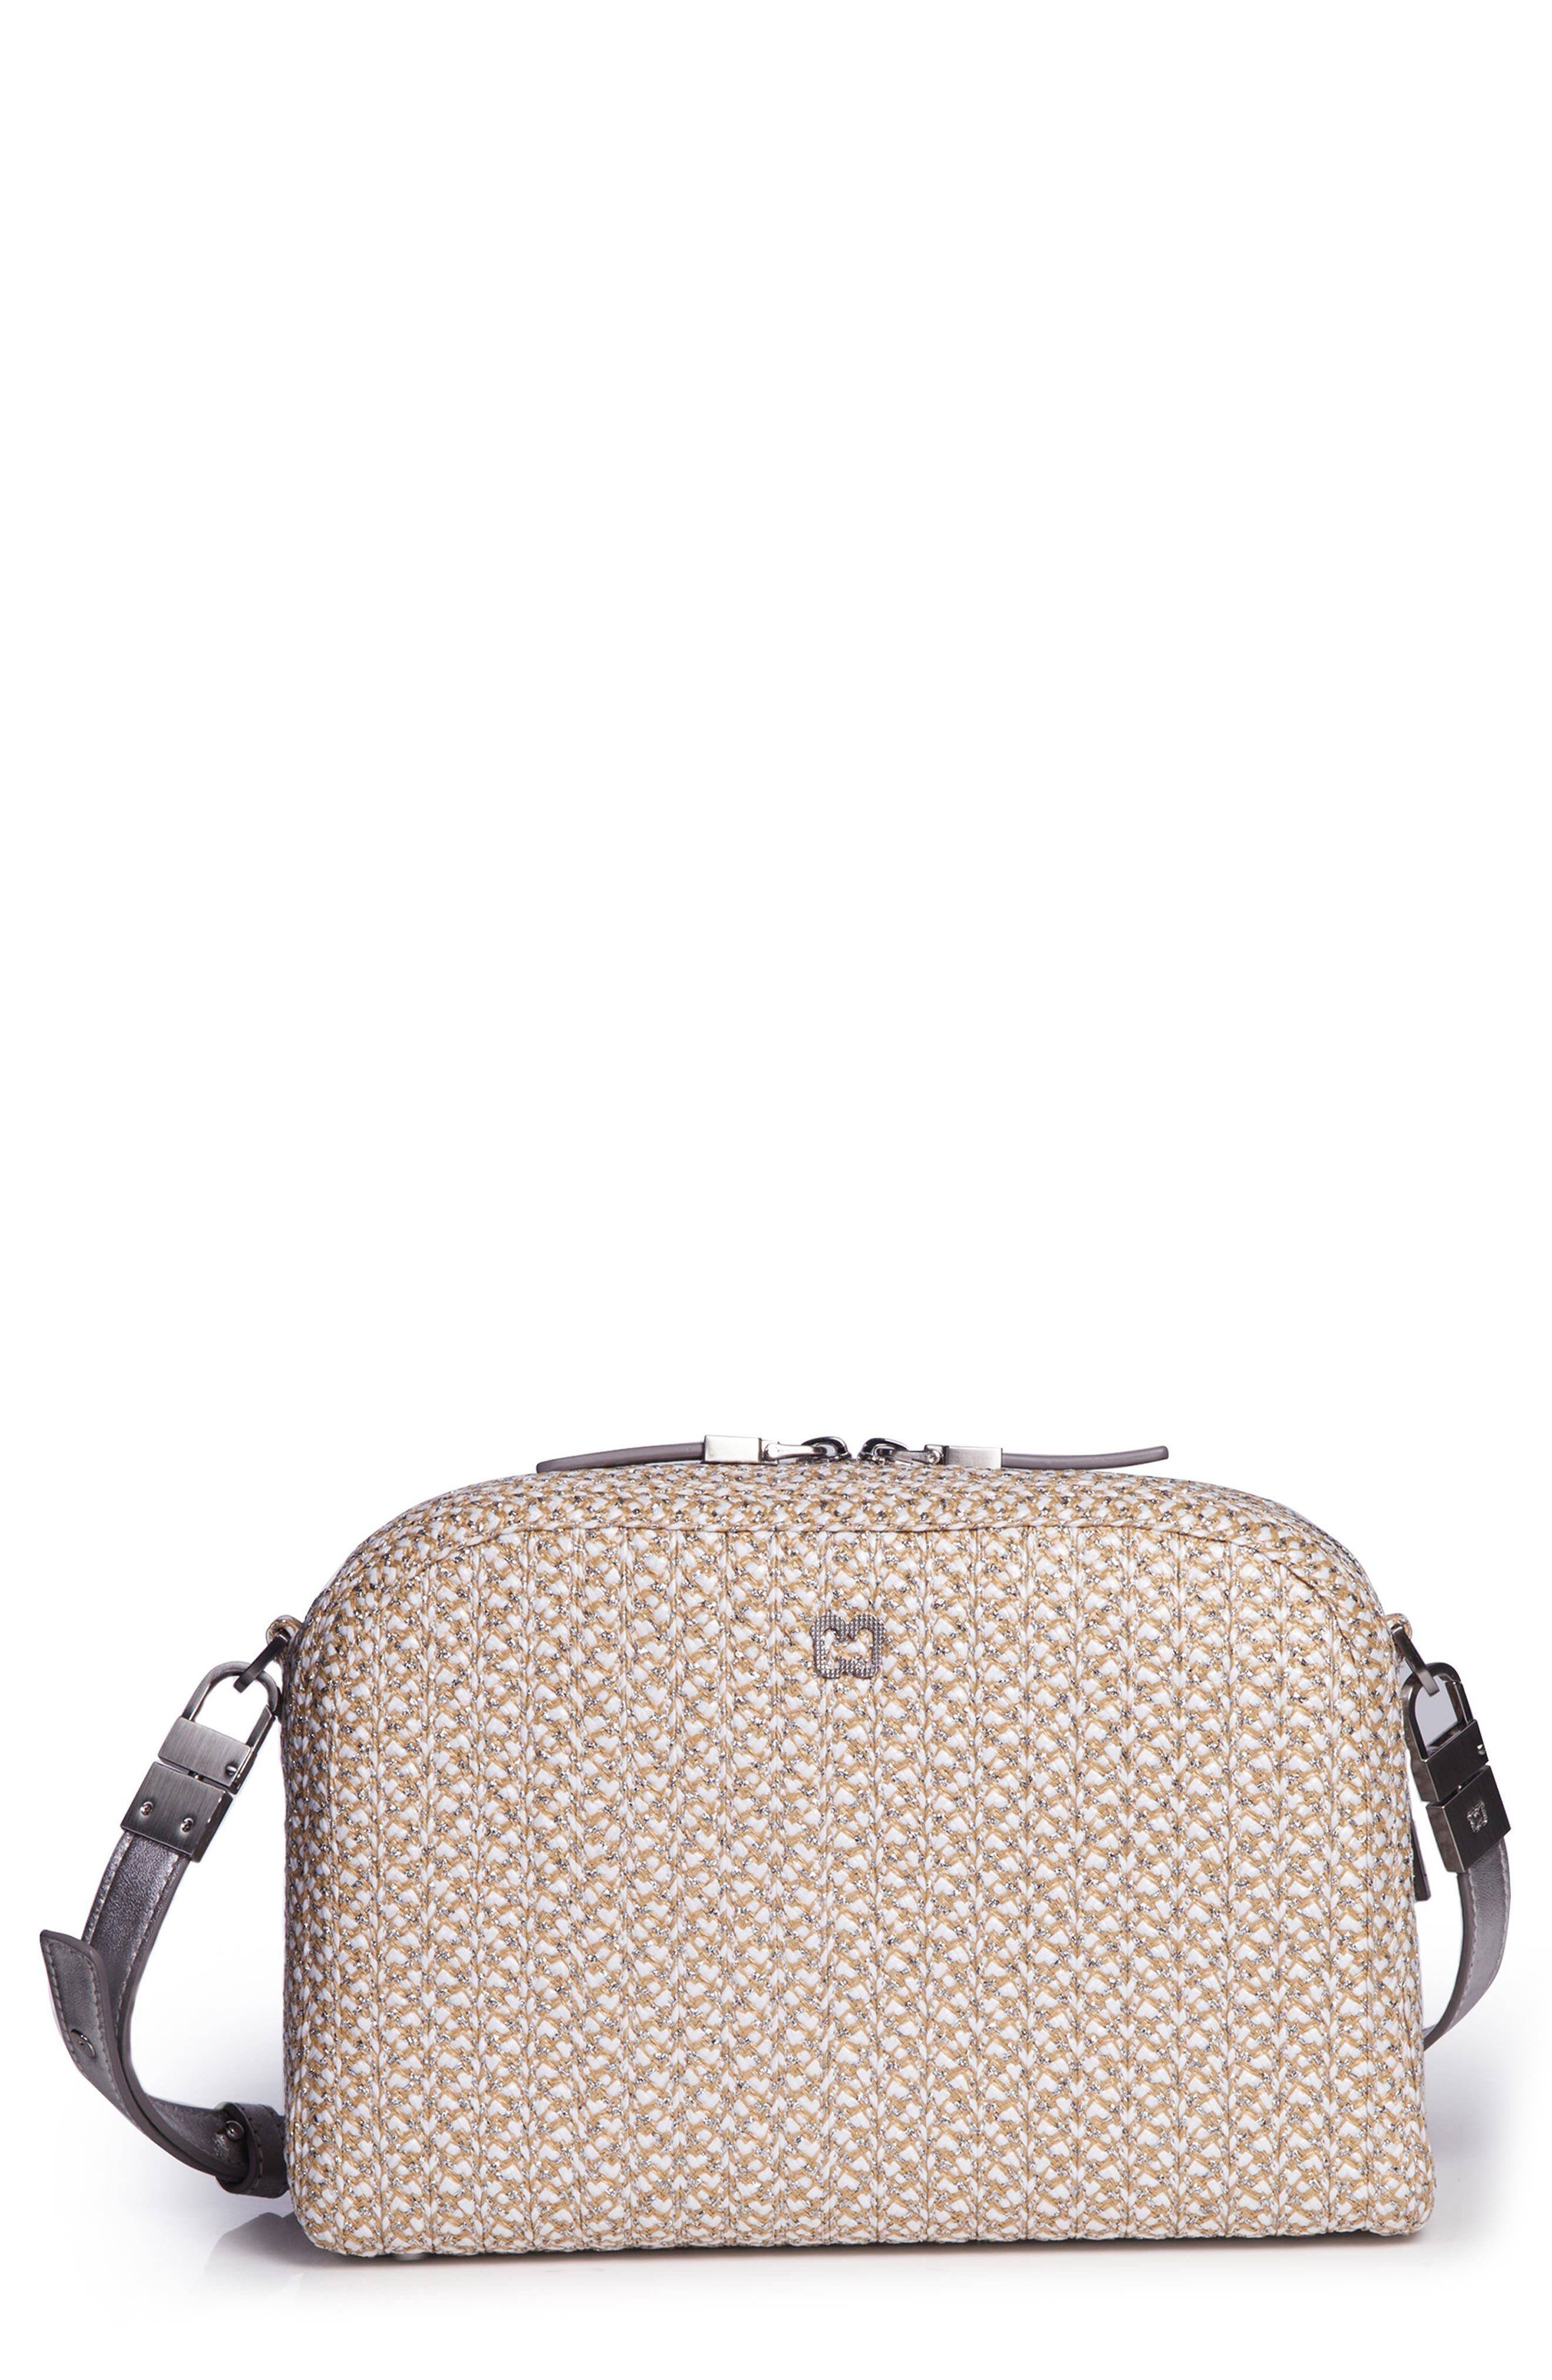 Squishee<sup>®</sup> Courbe Crossbody Bag,                             Main thumbnail 1, color,                             FROST/ WHITE